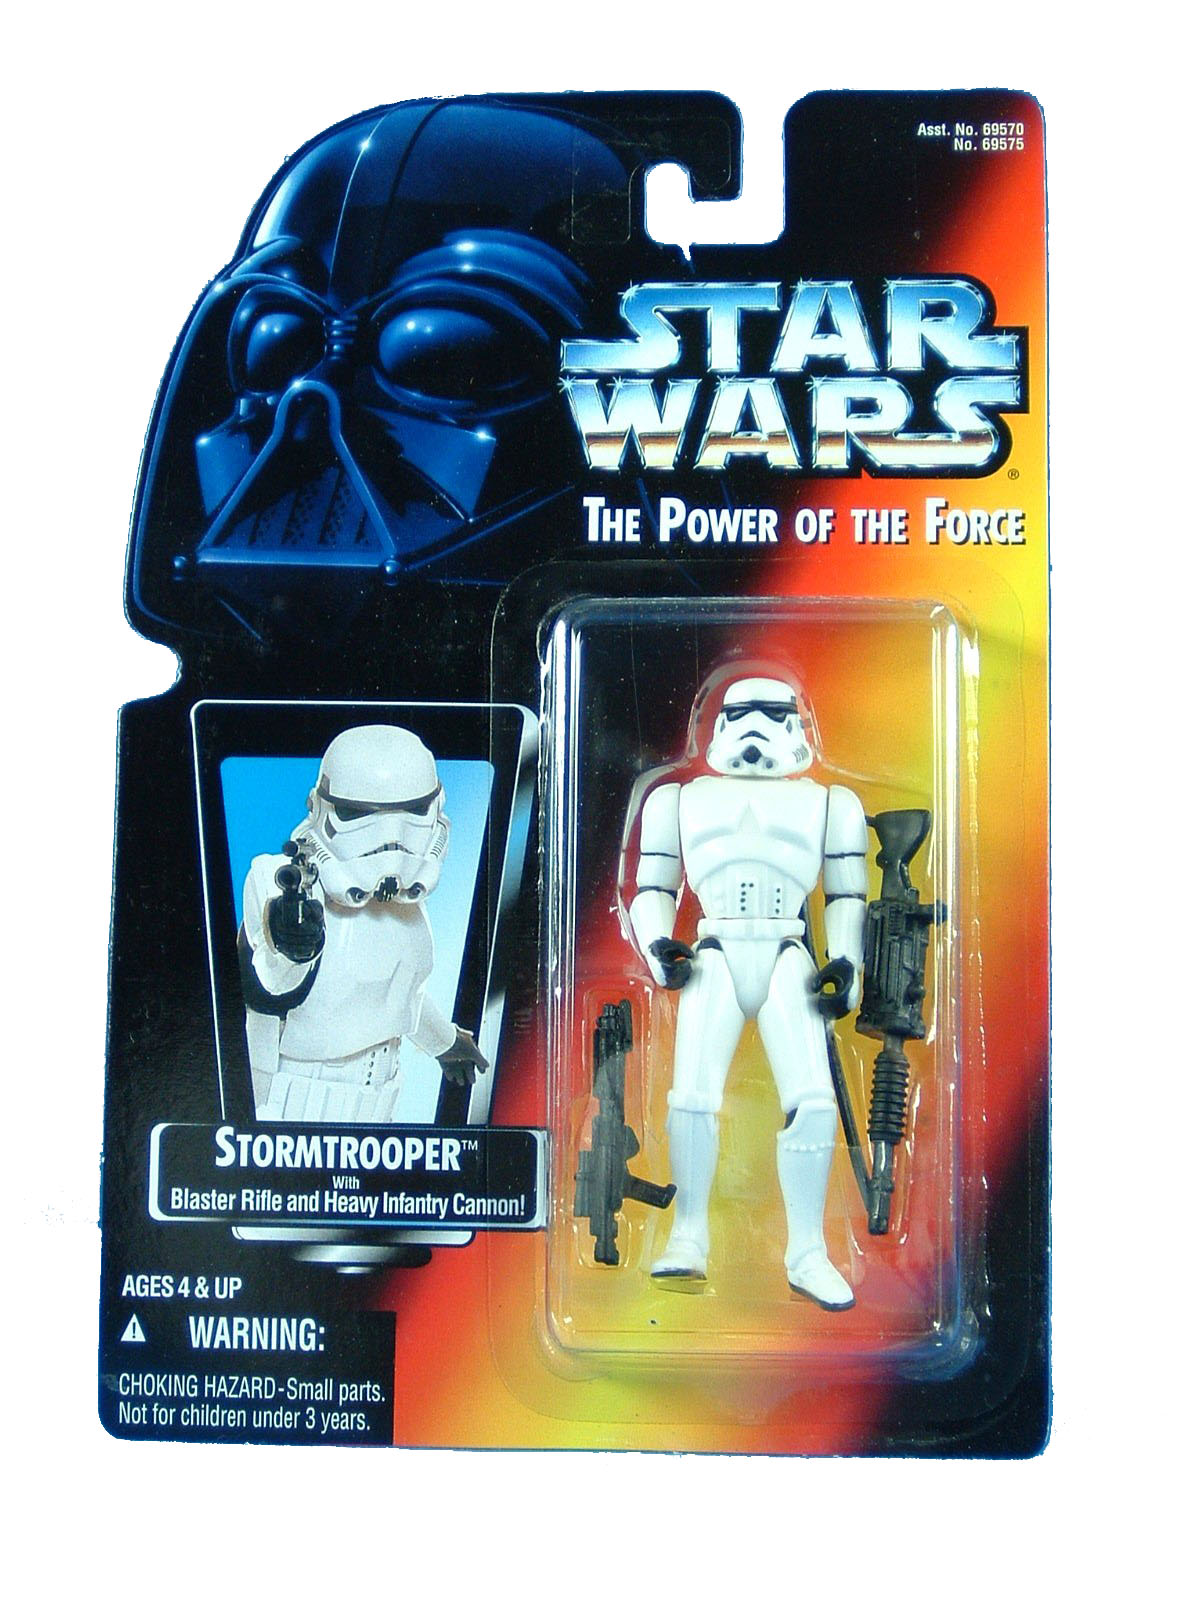 1995 Star Wars POTF2 STORMTROOPER Red Card